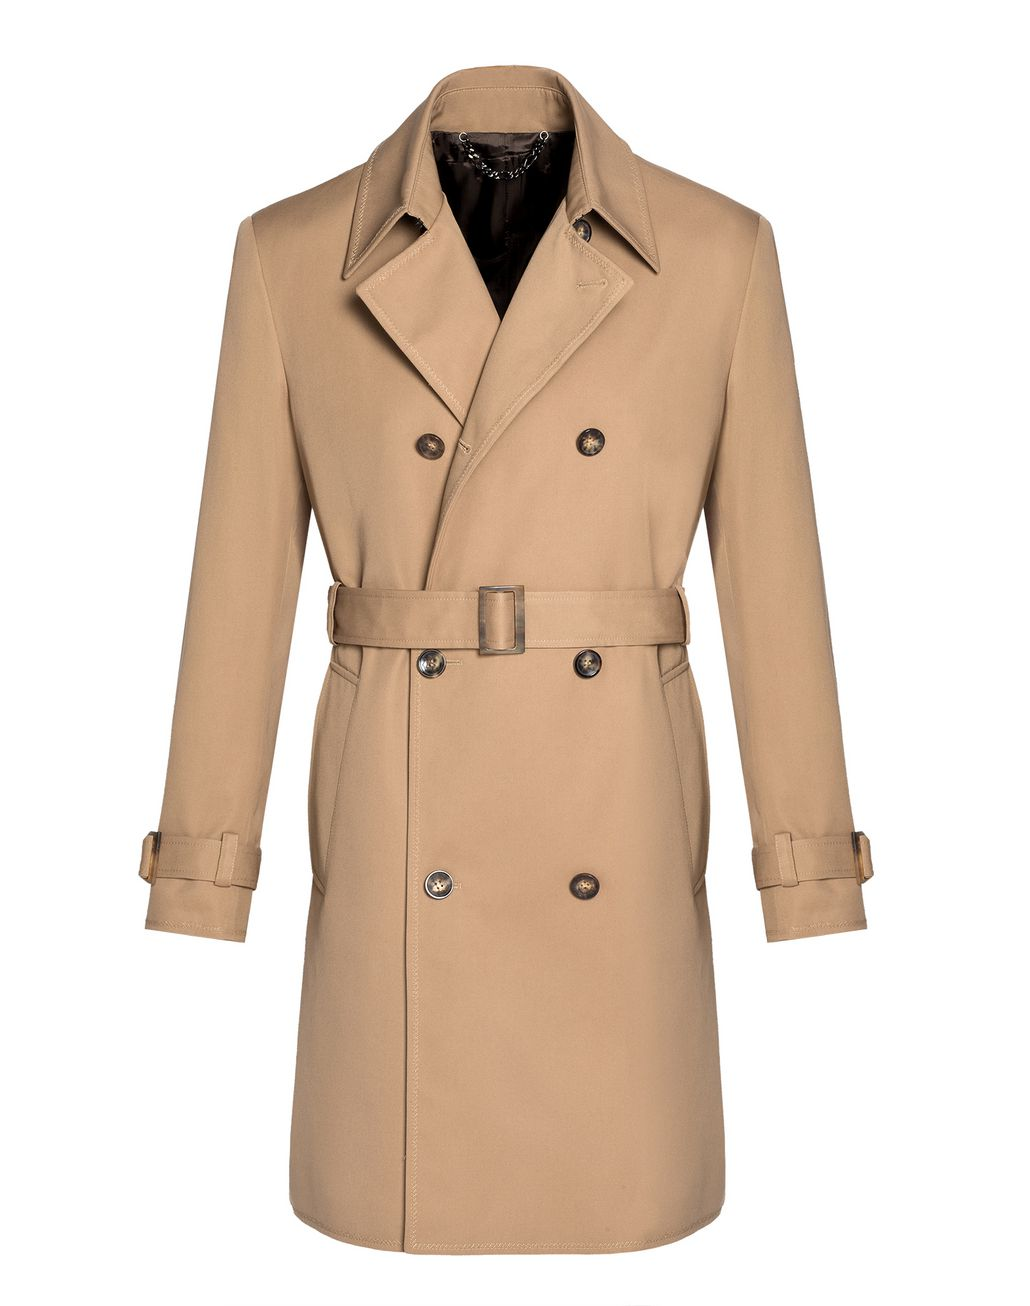 BRIONI Beige Double Breasted Trench Coat Coats & Raincoats Man f